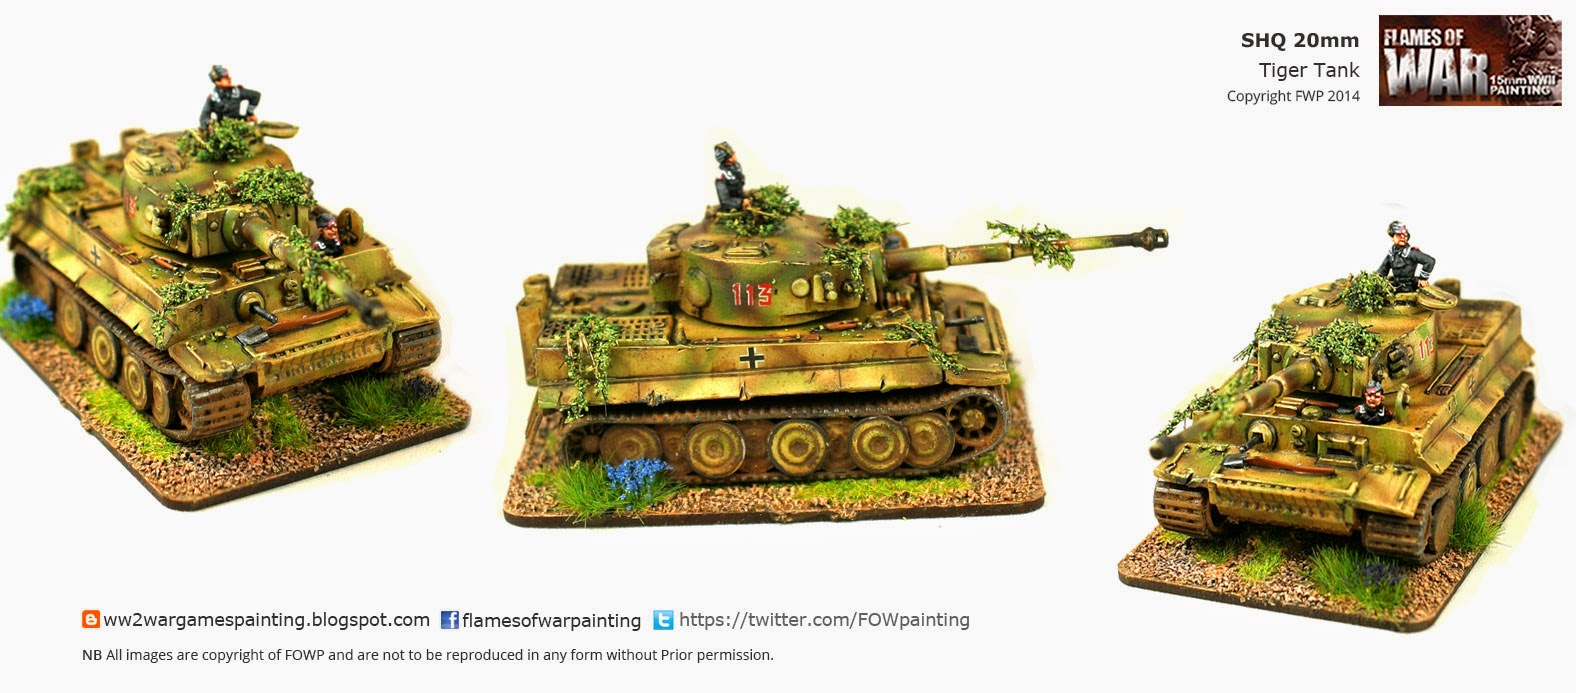 SHQ 20mm Tiger Tank painted by FOWP